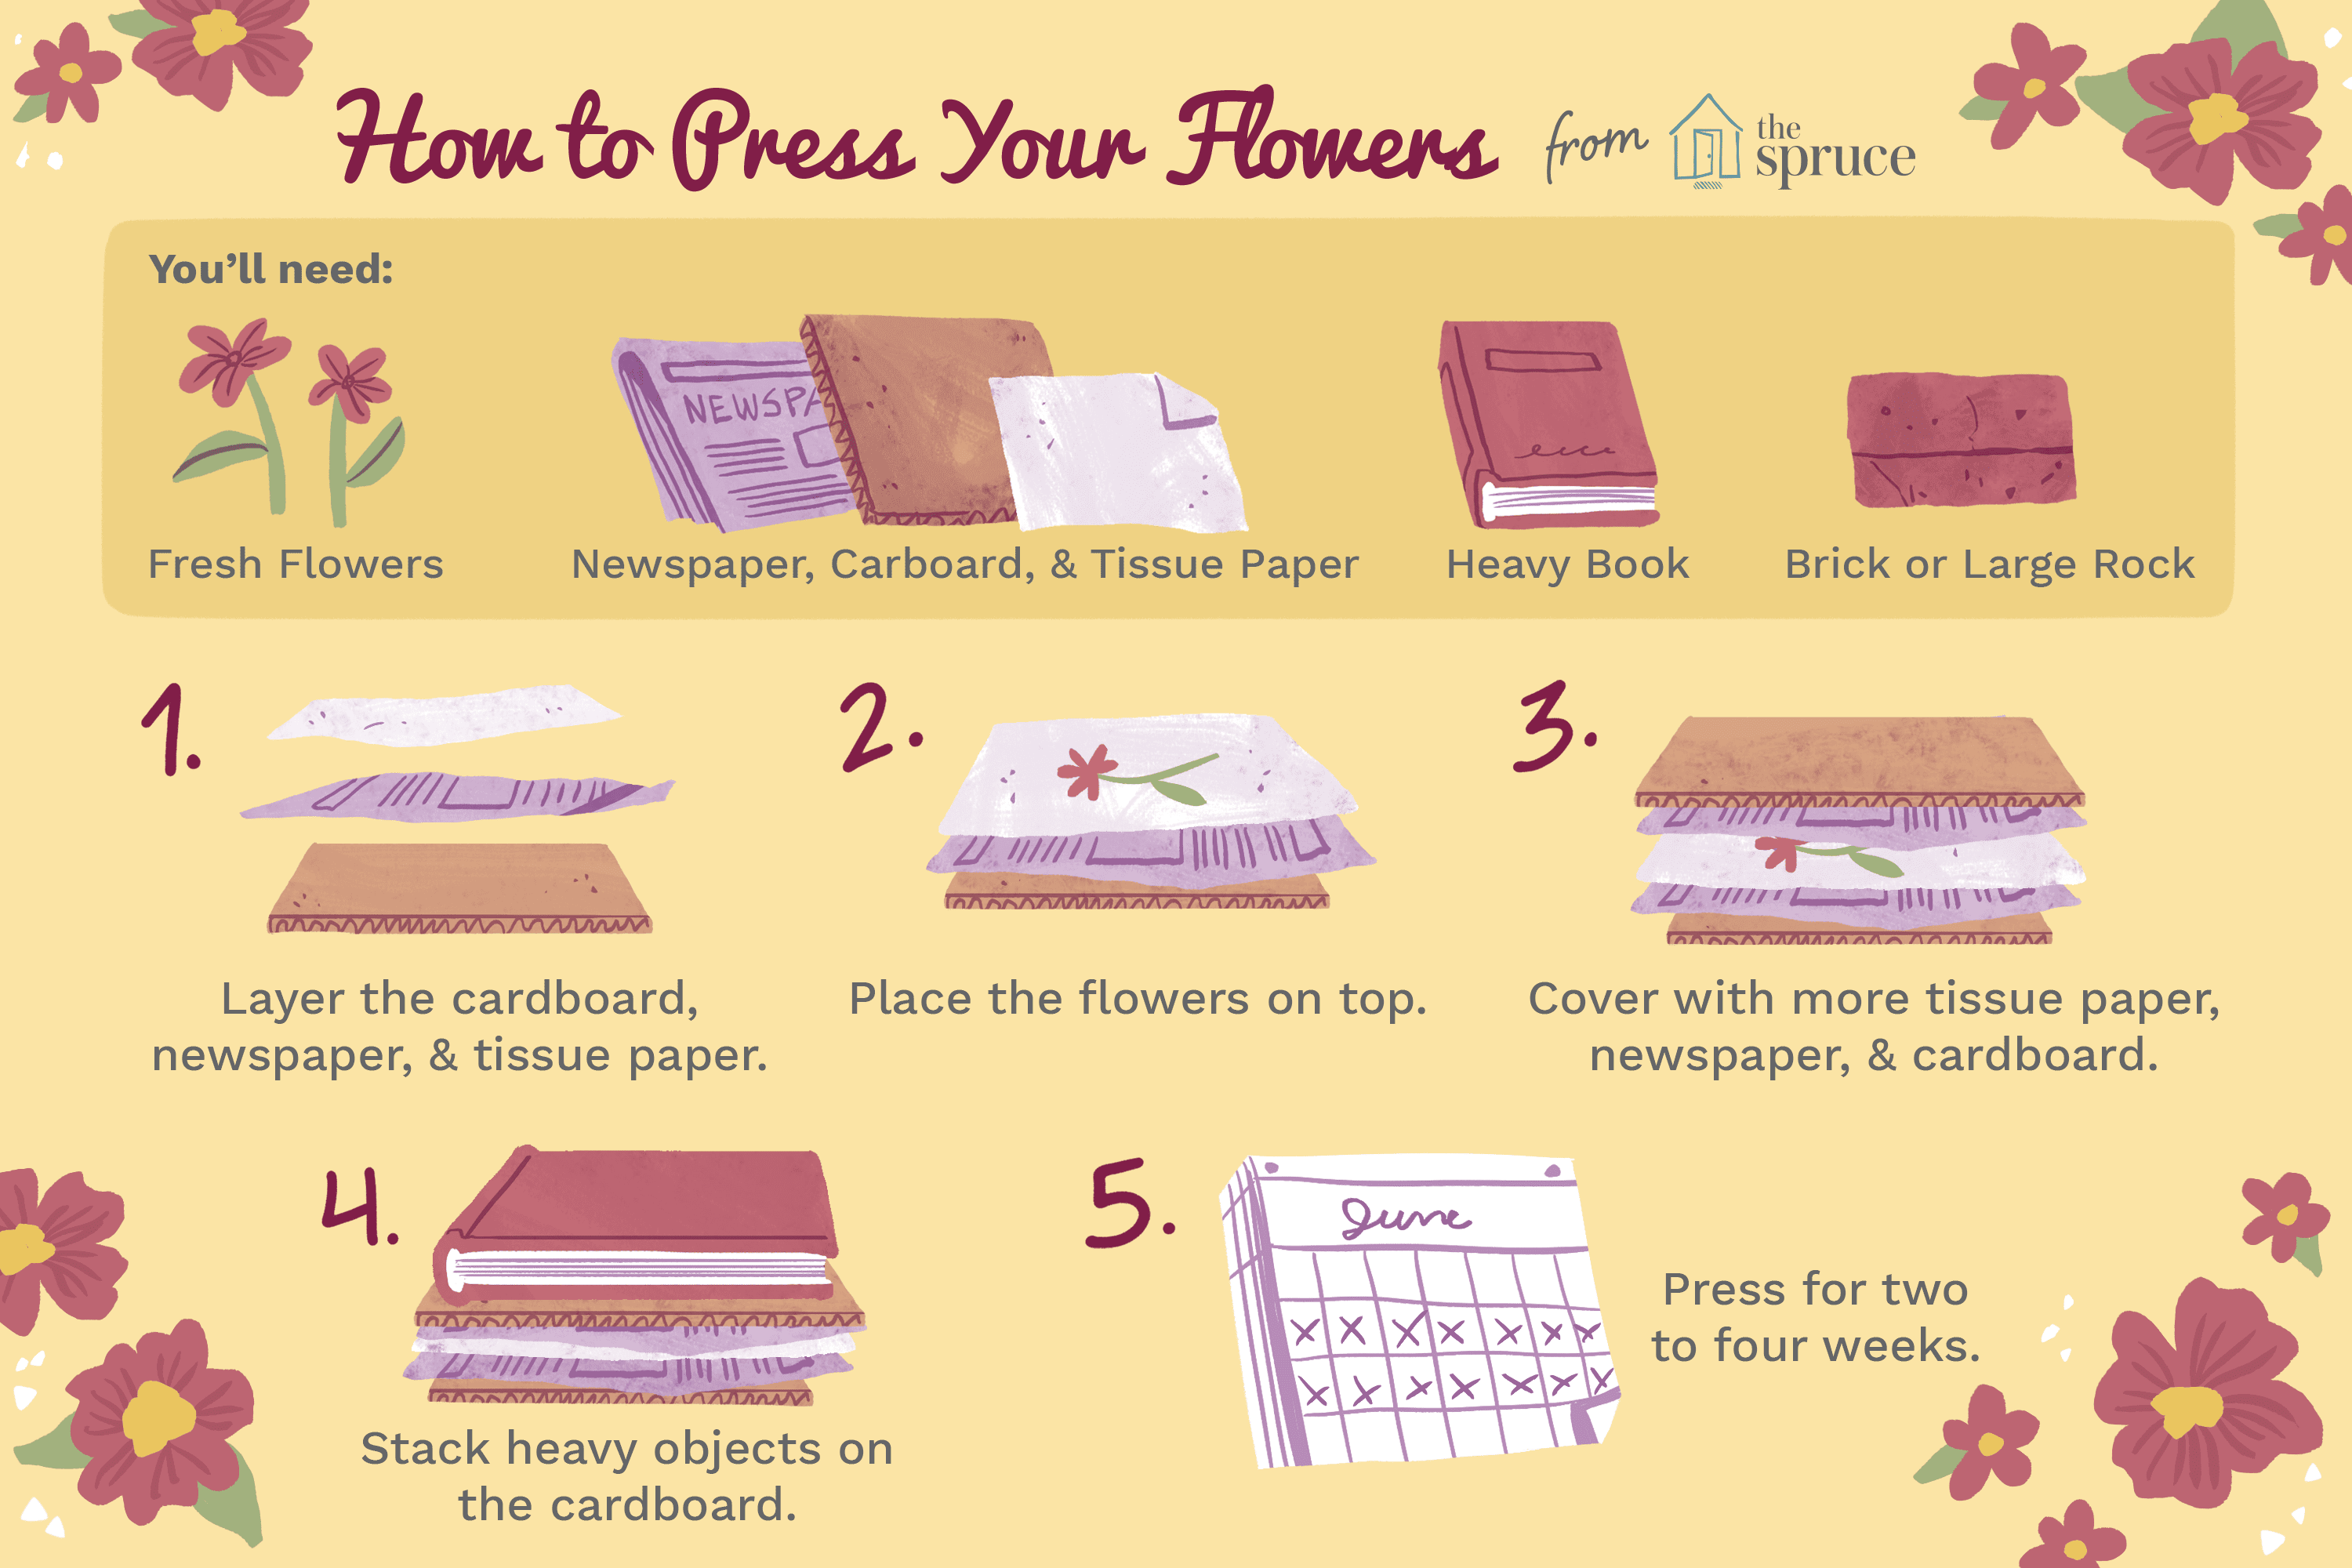 Illustration showing how to press flowers